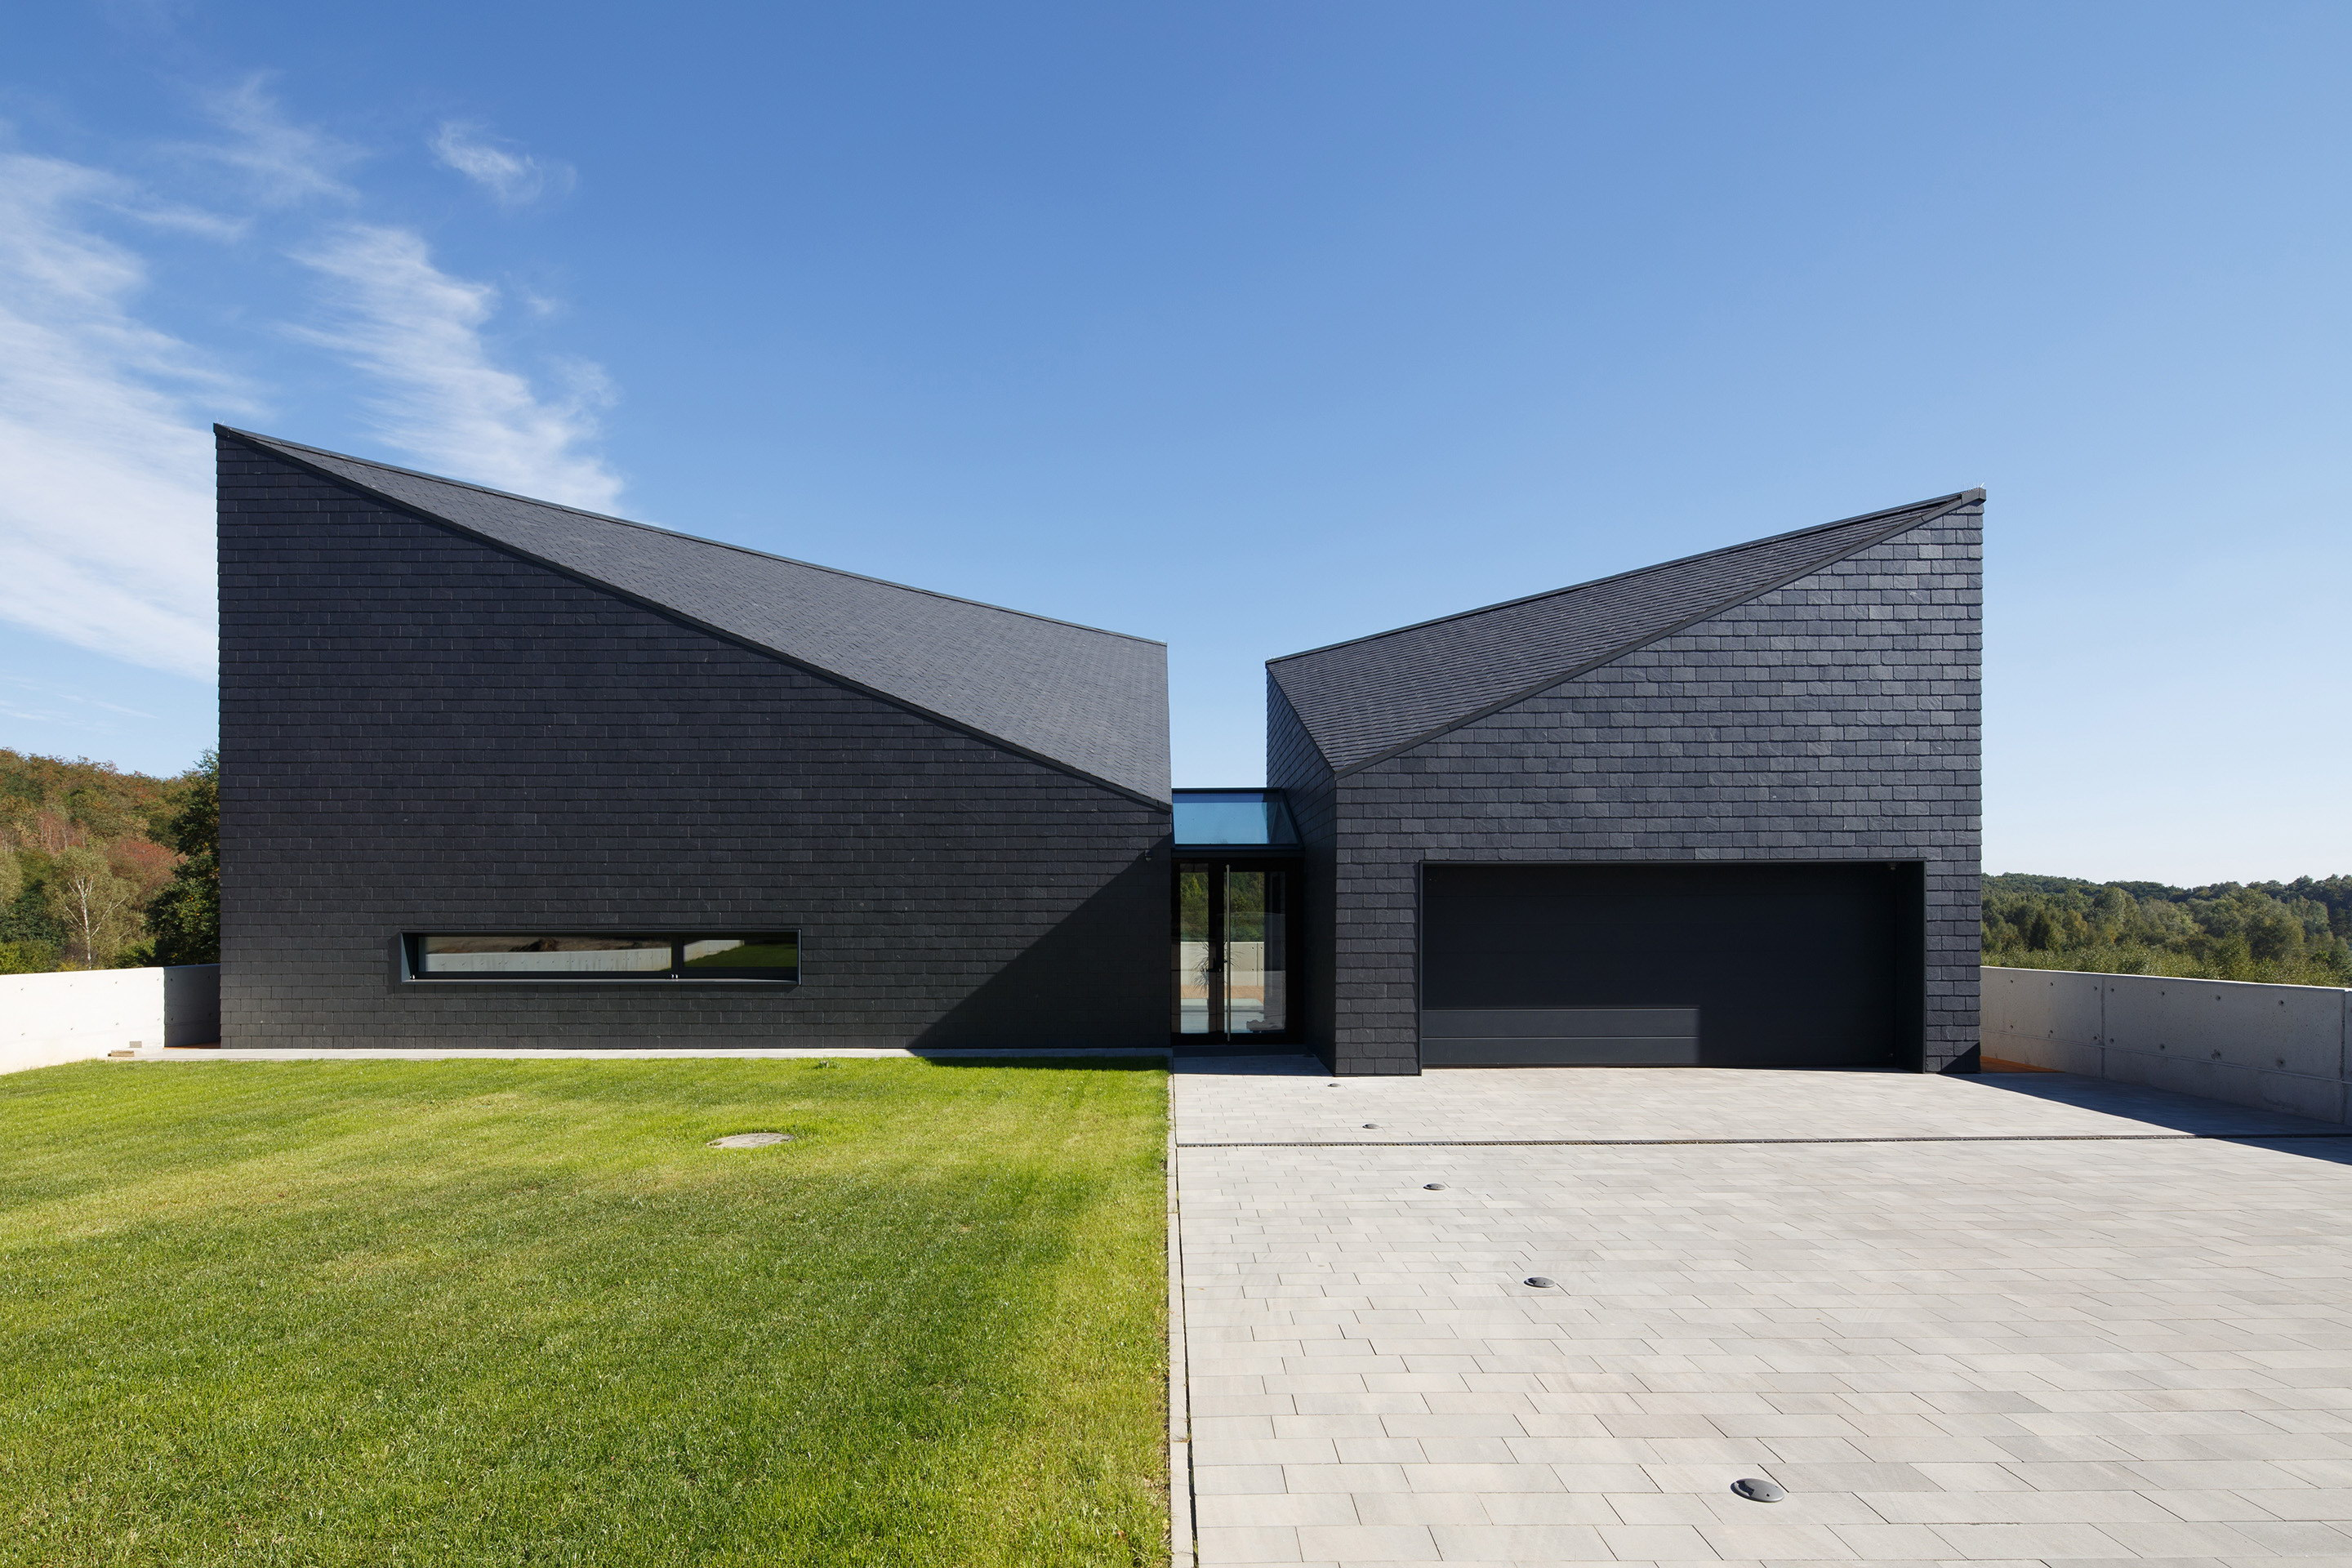 House in Krostoszowice by RS + Robert Skitek